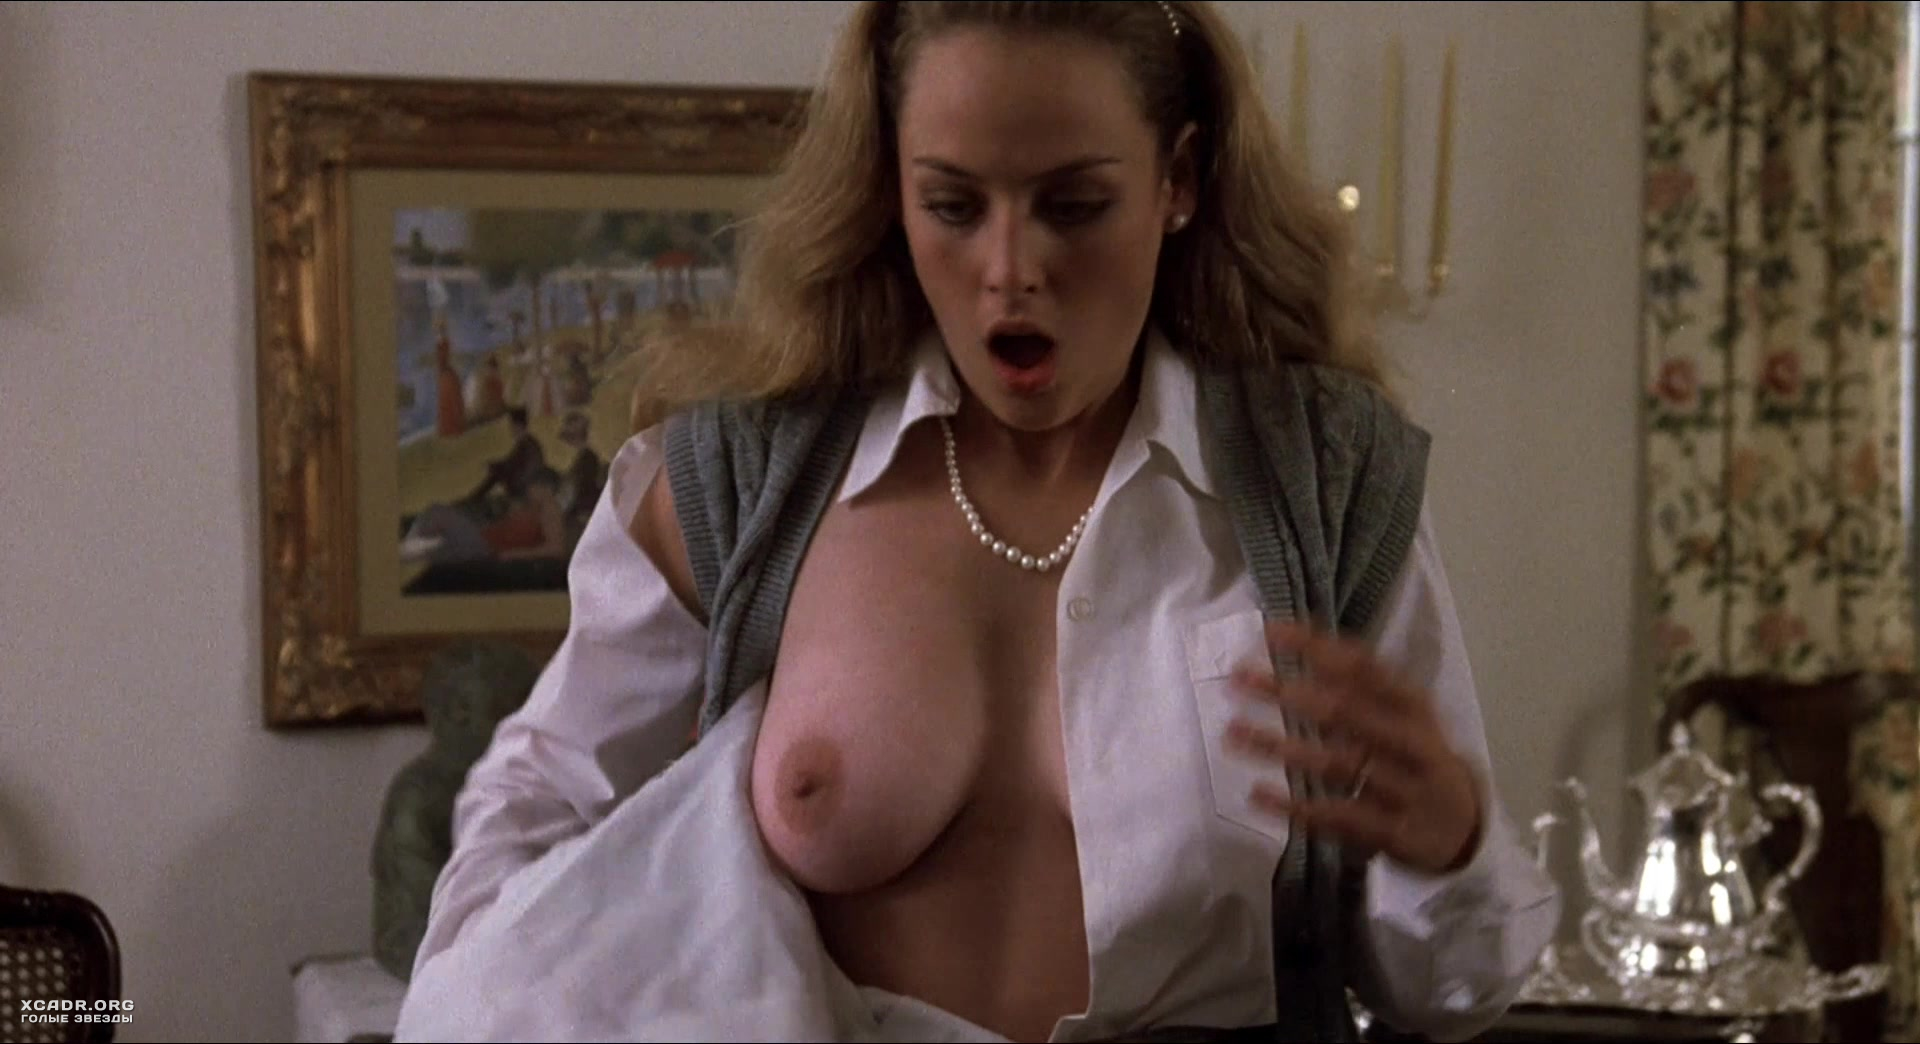 Virginia madsen nude sex scene in the hot spot picture